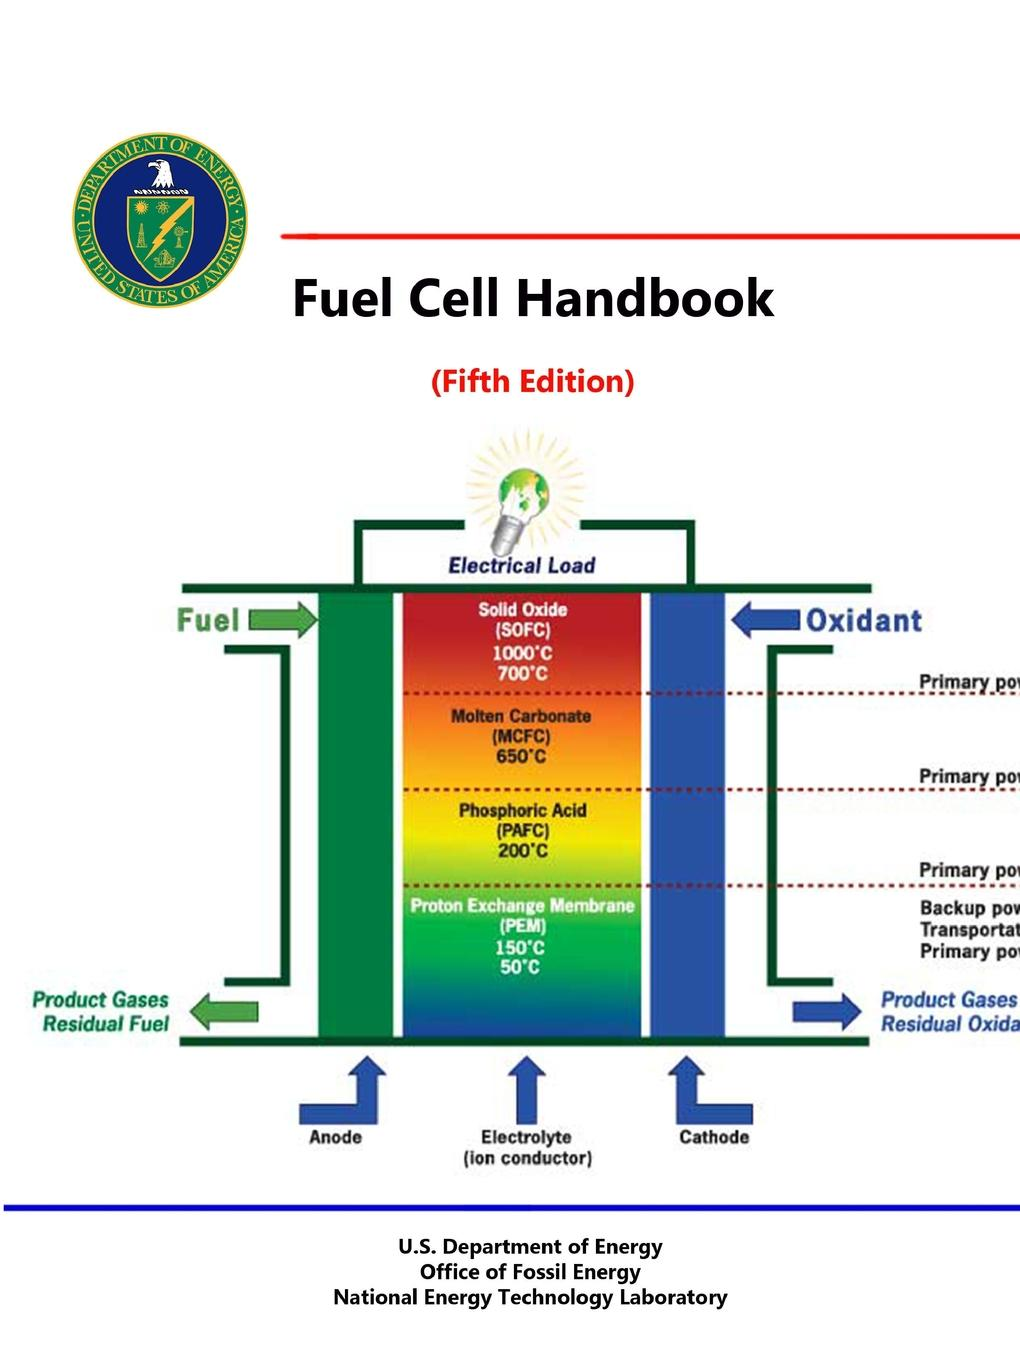 U.S. Department of Energy Fuel Cell Handbook (Fifth Edition) yushan yan materials for low temperature fuel cells